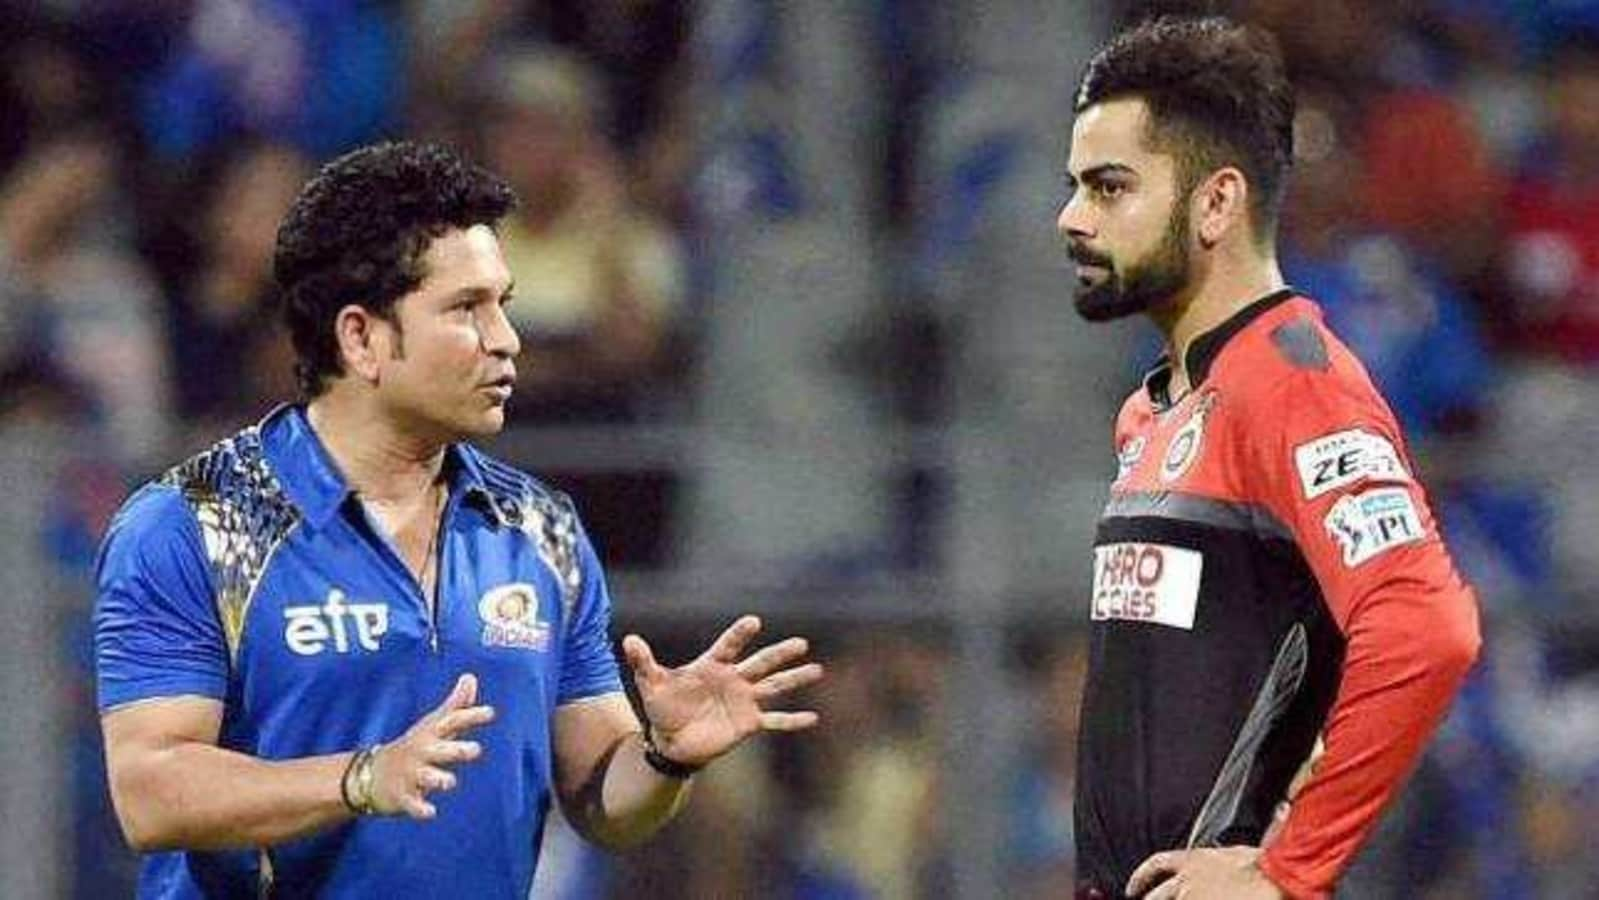 'I had a chat with him': Kohli reveals how Tendulkar's advice 'opened up' his mind - Hindustan Times